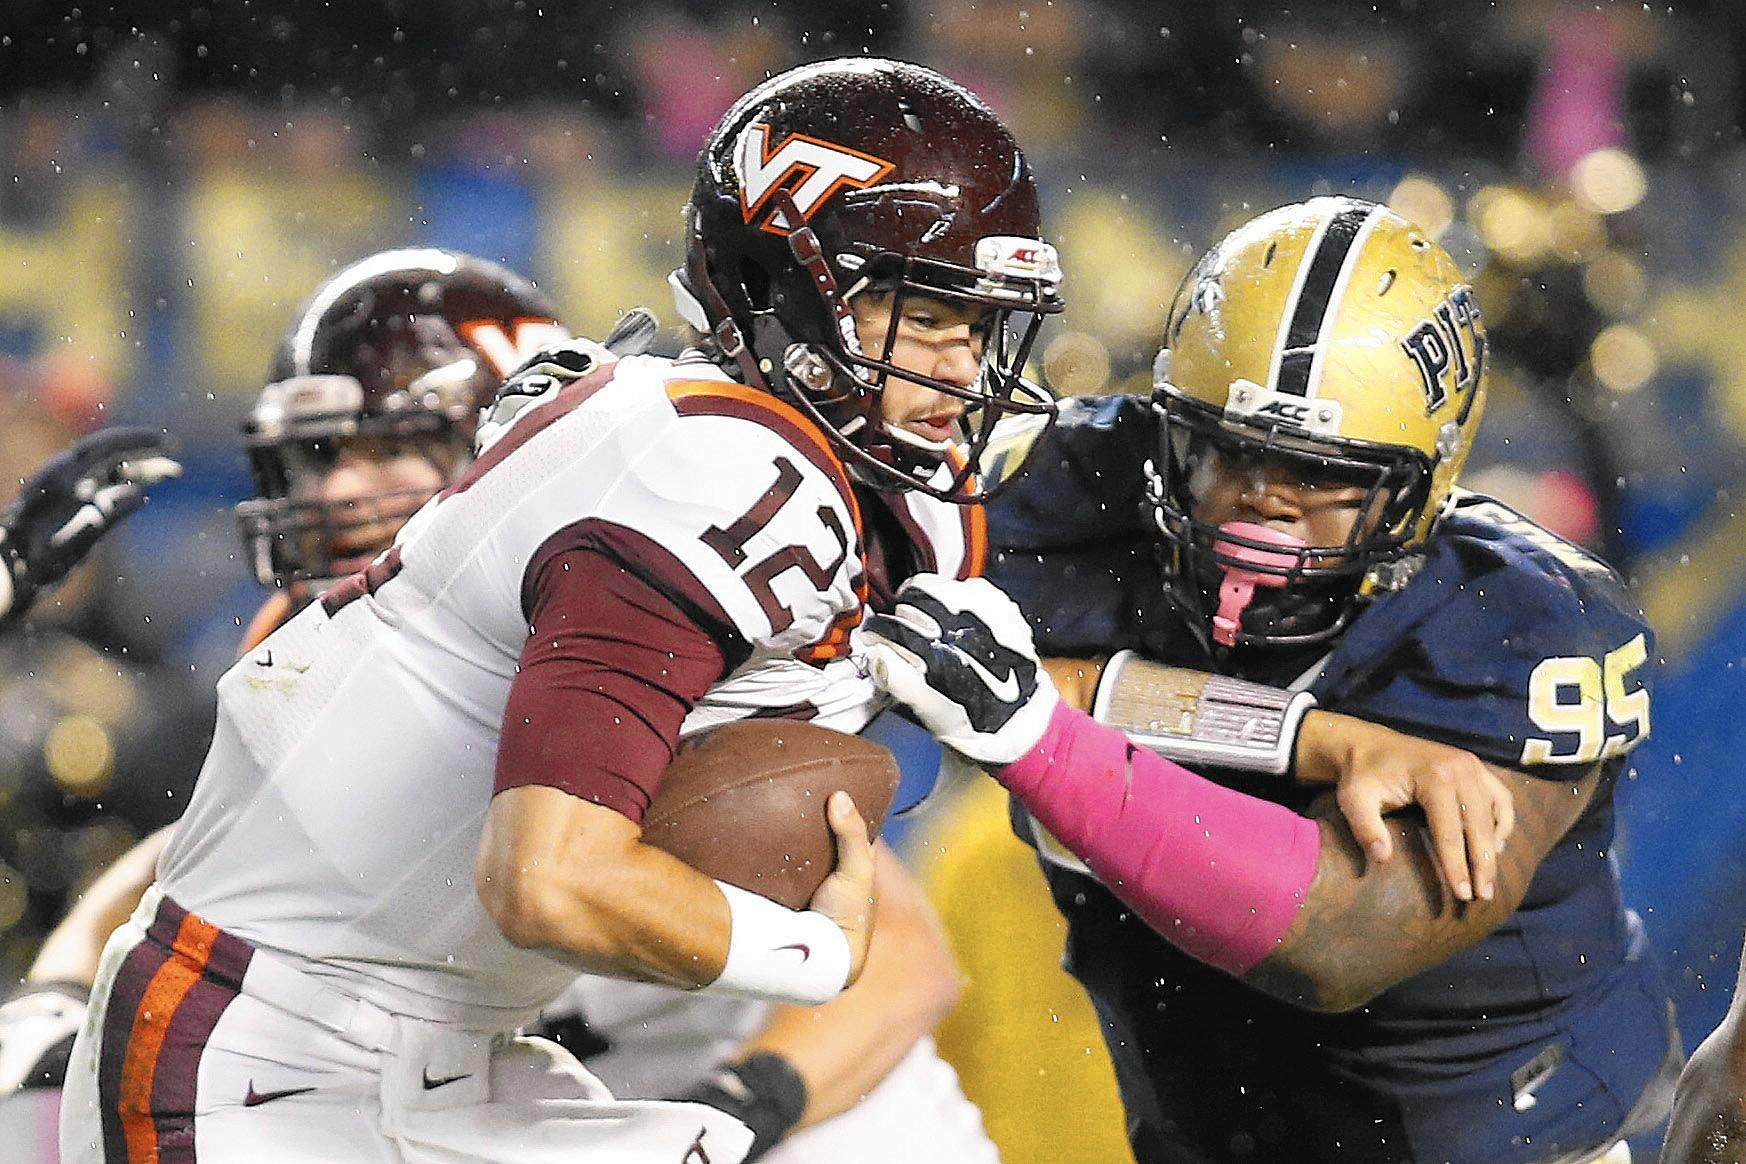 Virginia Tech quarterback Michael Brewer is tackled by Pittsburgh defensive lineman Khaynin Mosley-Smith on Thursday in Pittsburgh.